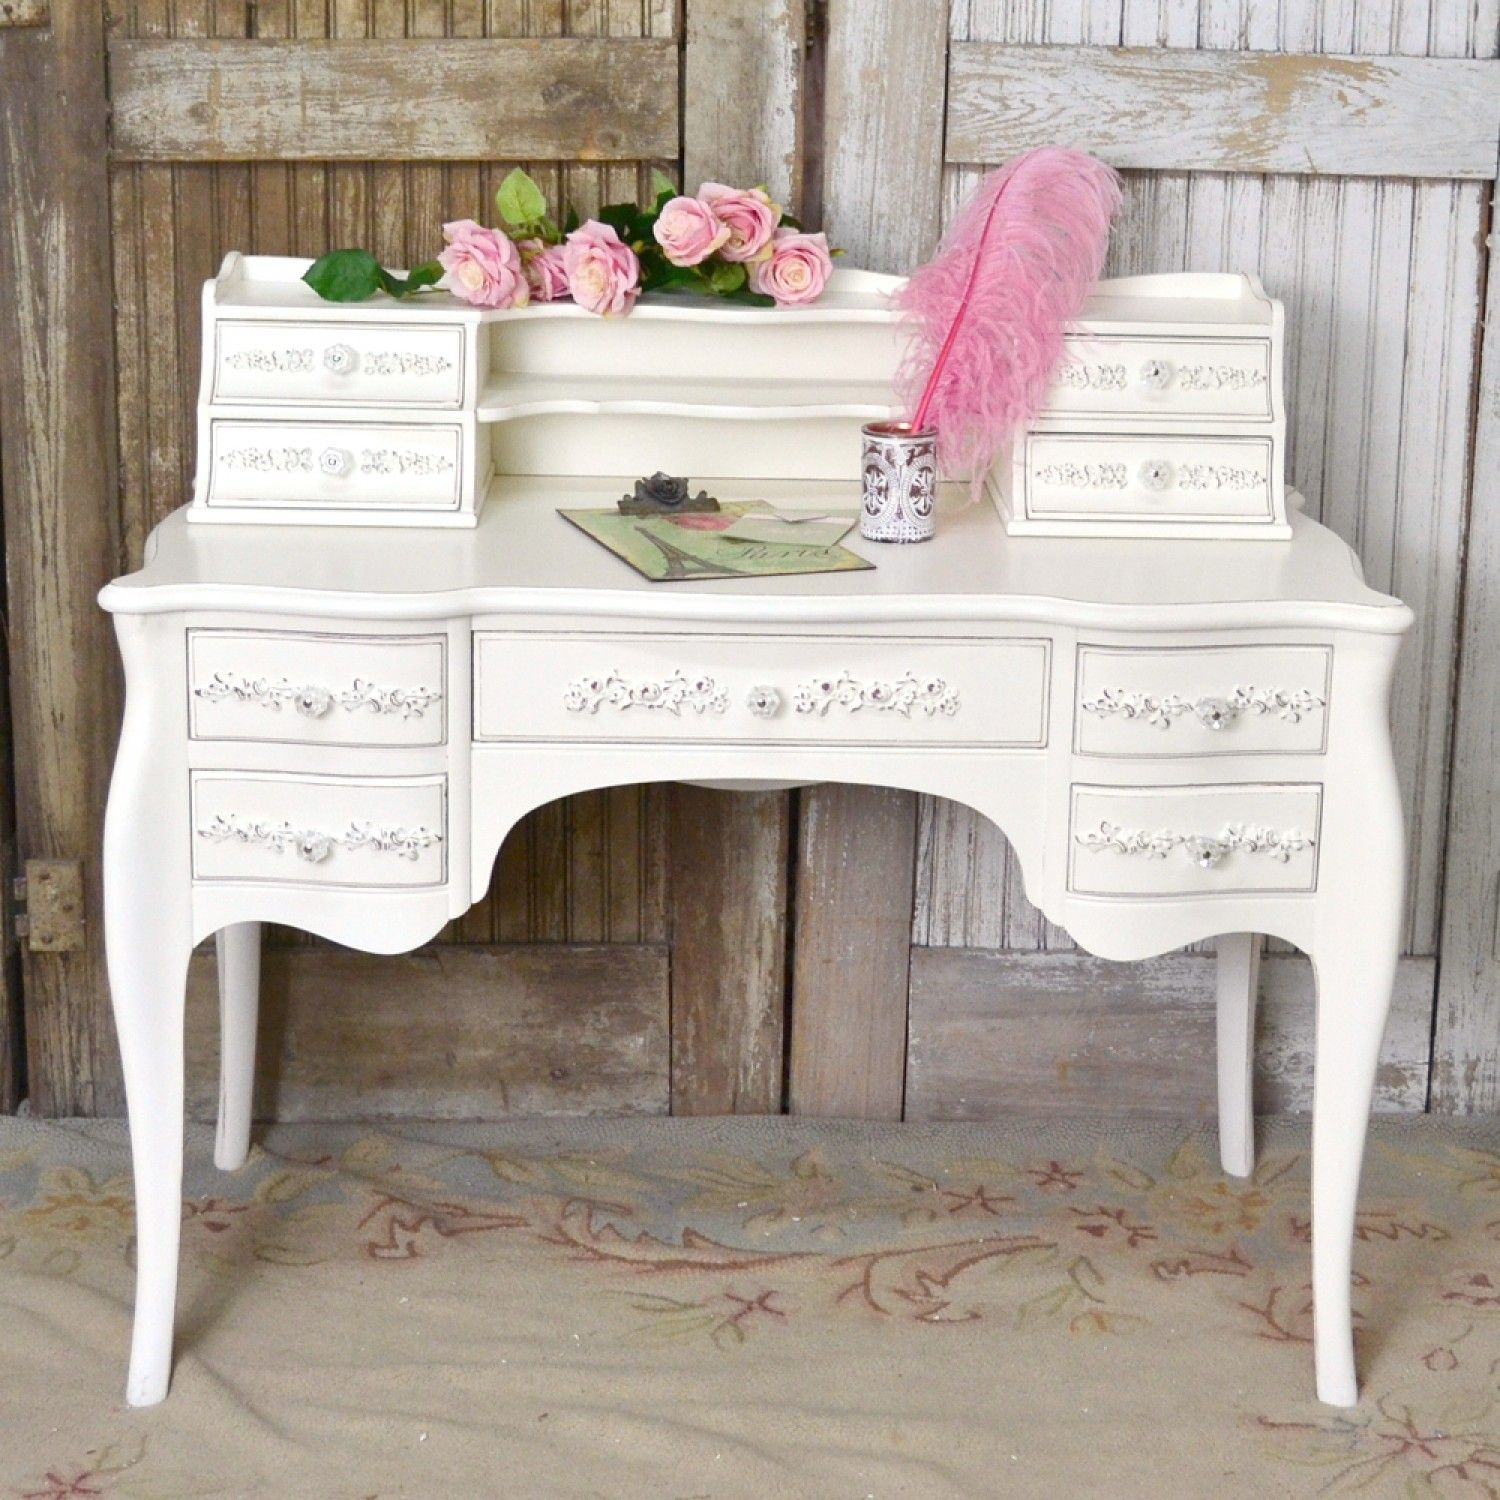 Gorgeous Ornate Writing Desk In White Shabby Chic Homes Shabby Chic Furniture Shabby Chic Desk